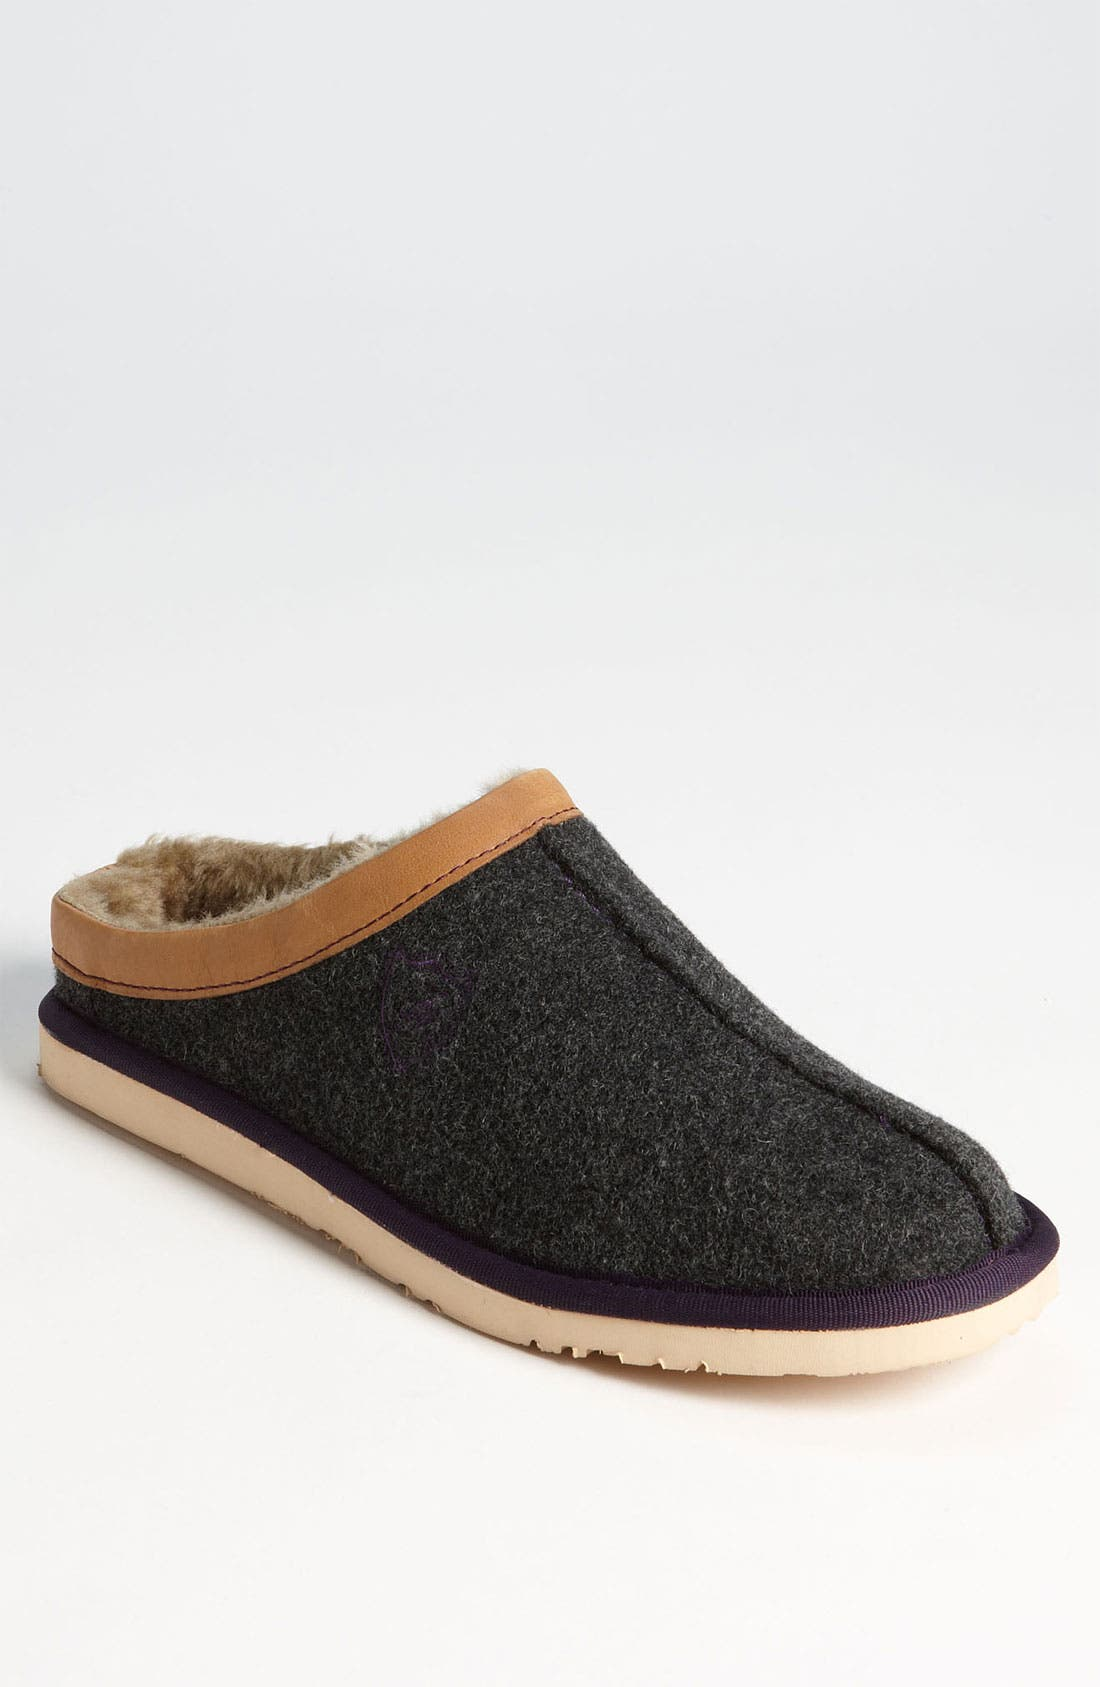 Main Image - Ted Baker London 'Dibe' Slipper